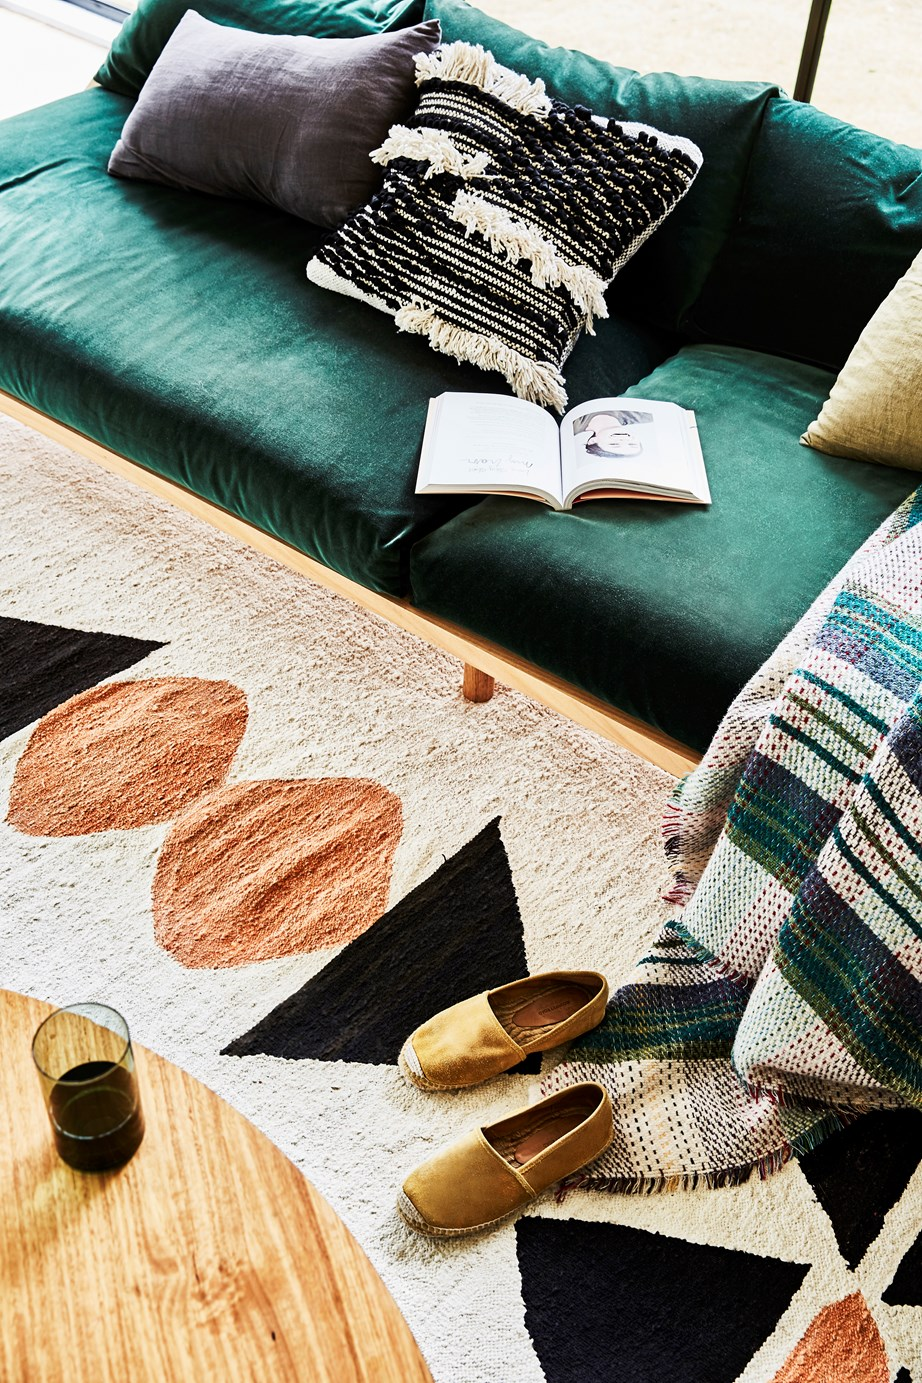 A large rug will disguise ugly flooring in a jiffy, adding texture and warmth as a bonus.